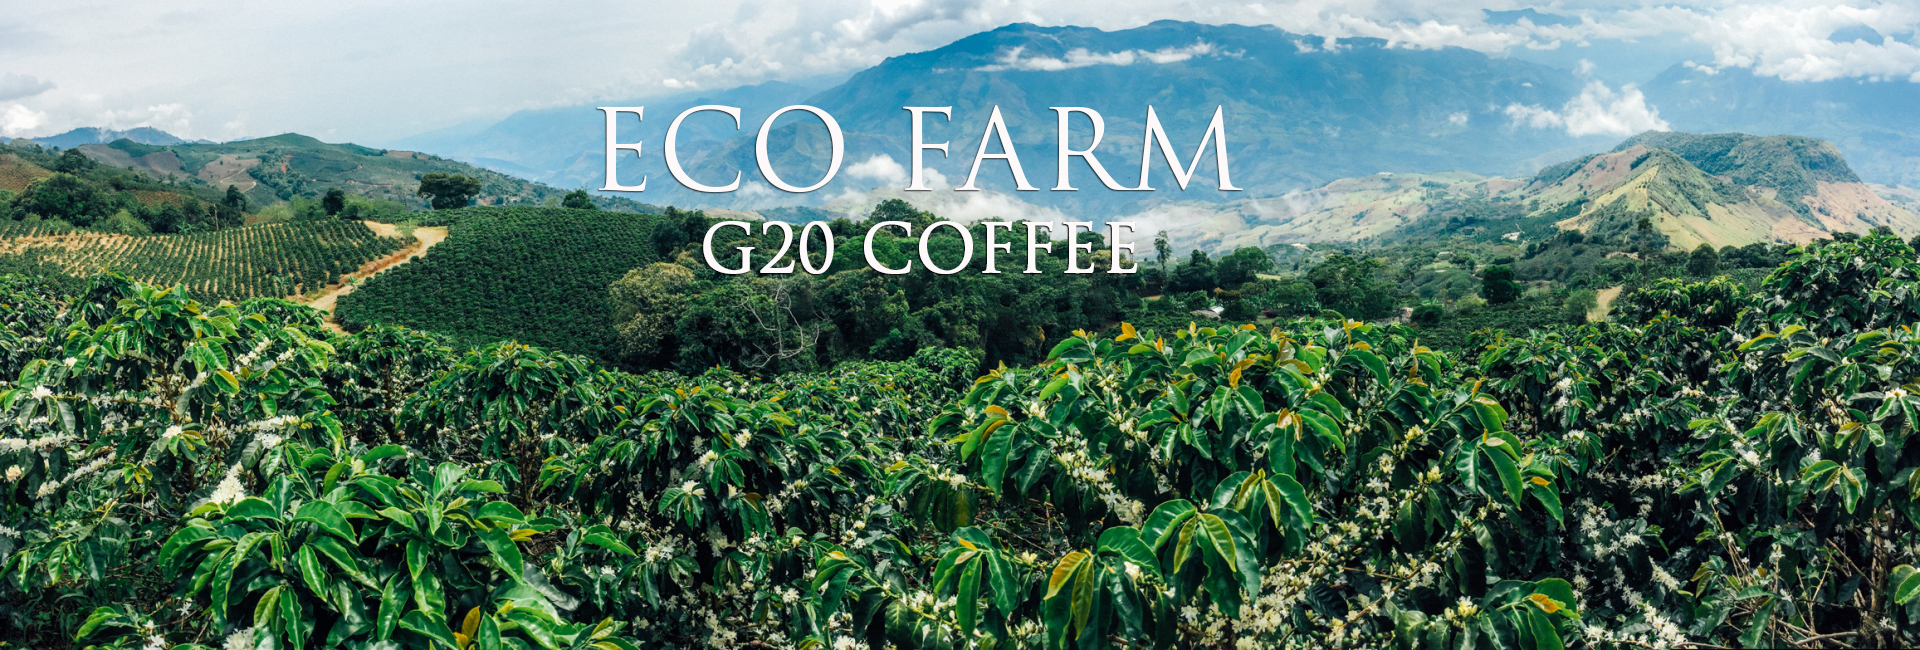 ECO FARM G20 COFFEE